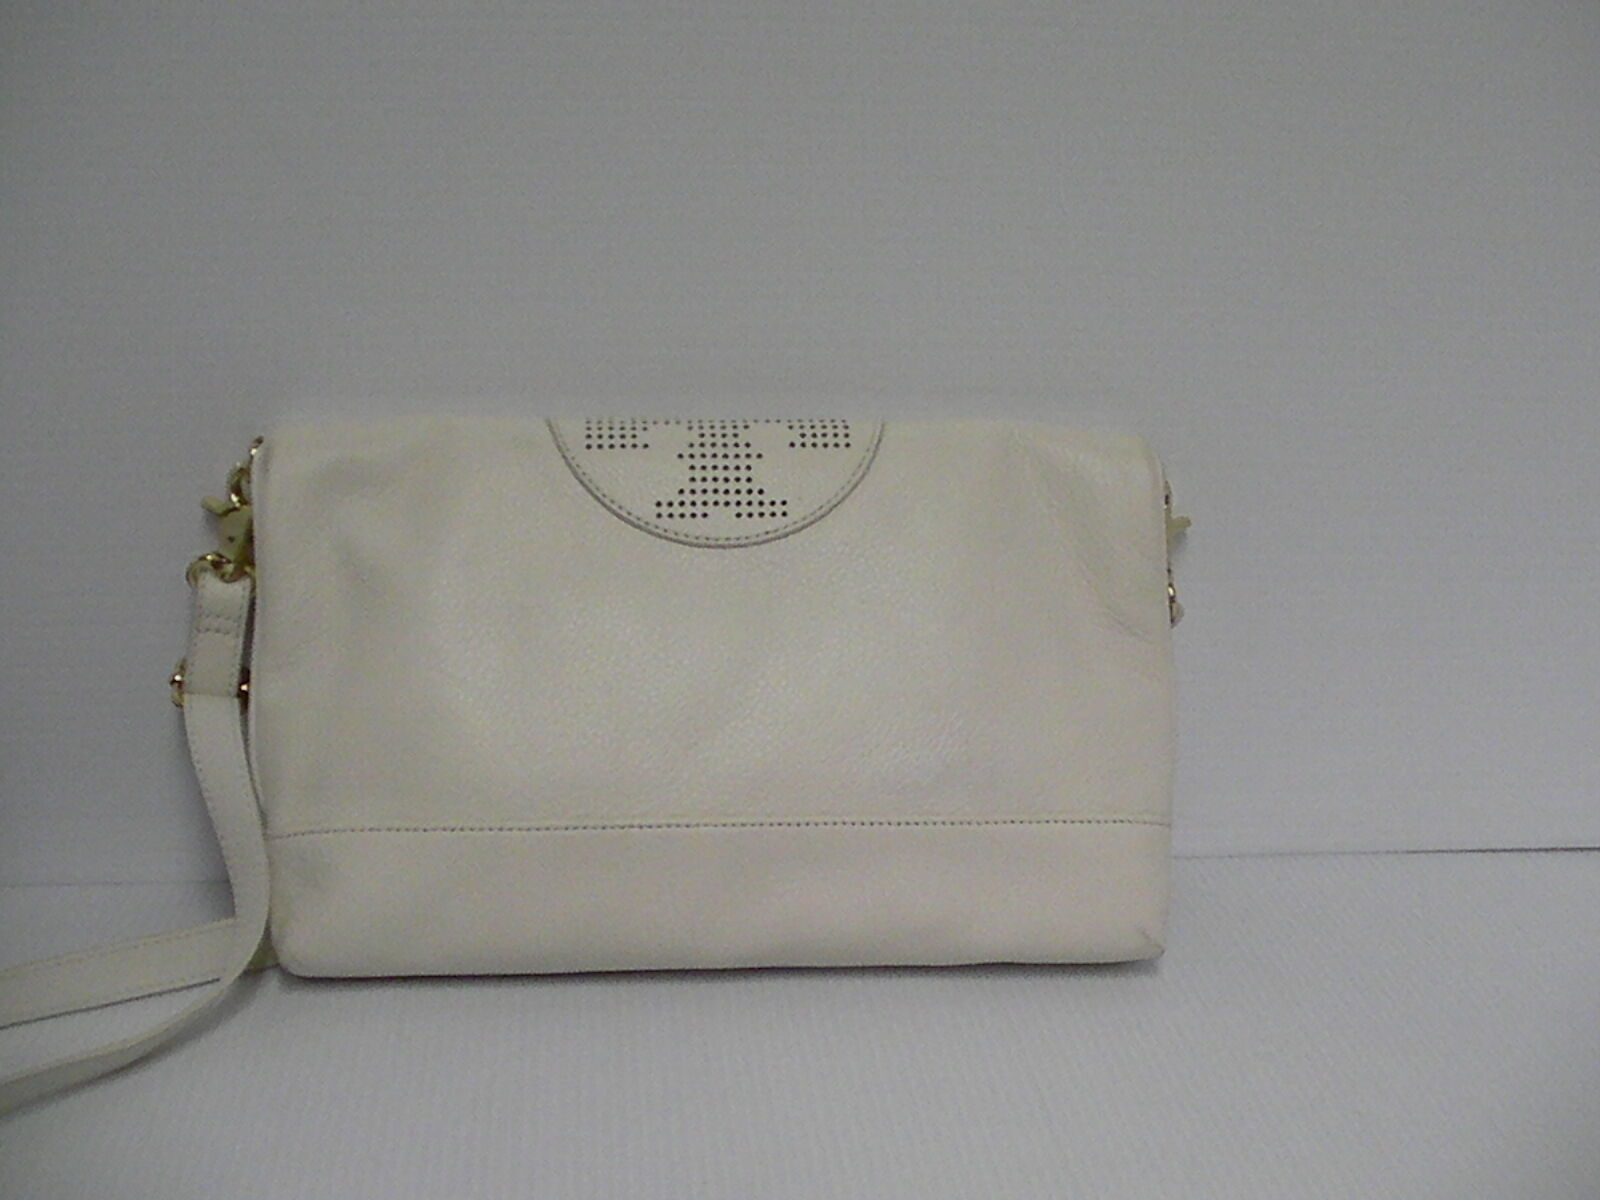 Primary image for Tory burch kipp foldover messenger cross body handbag large ivory